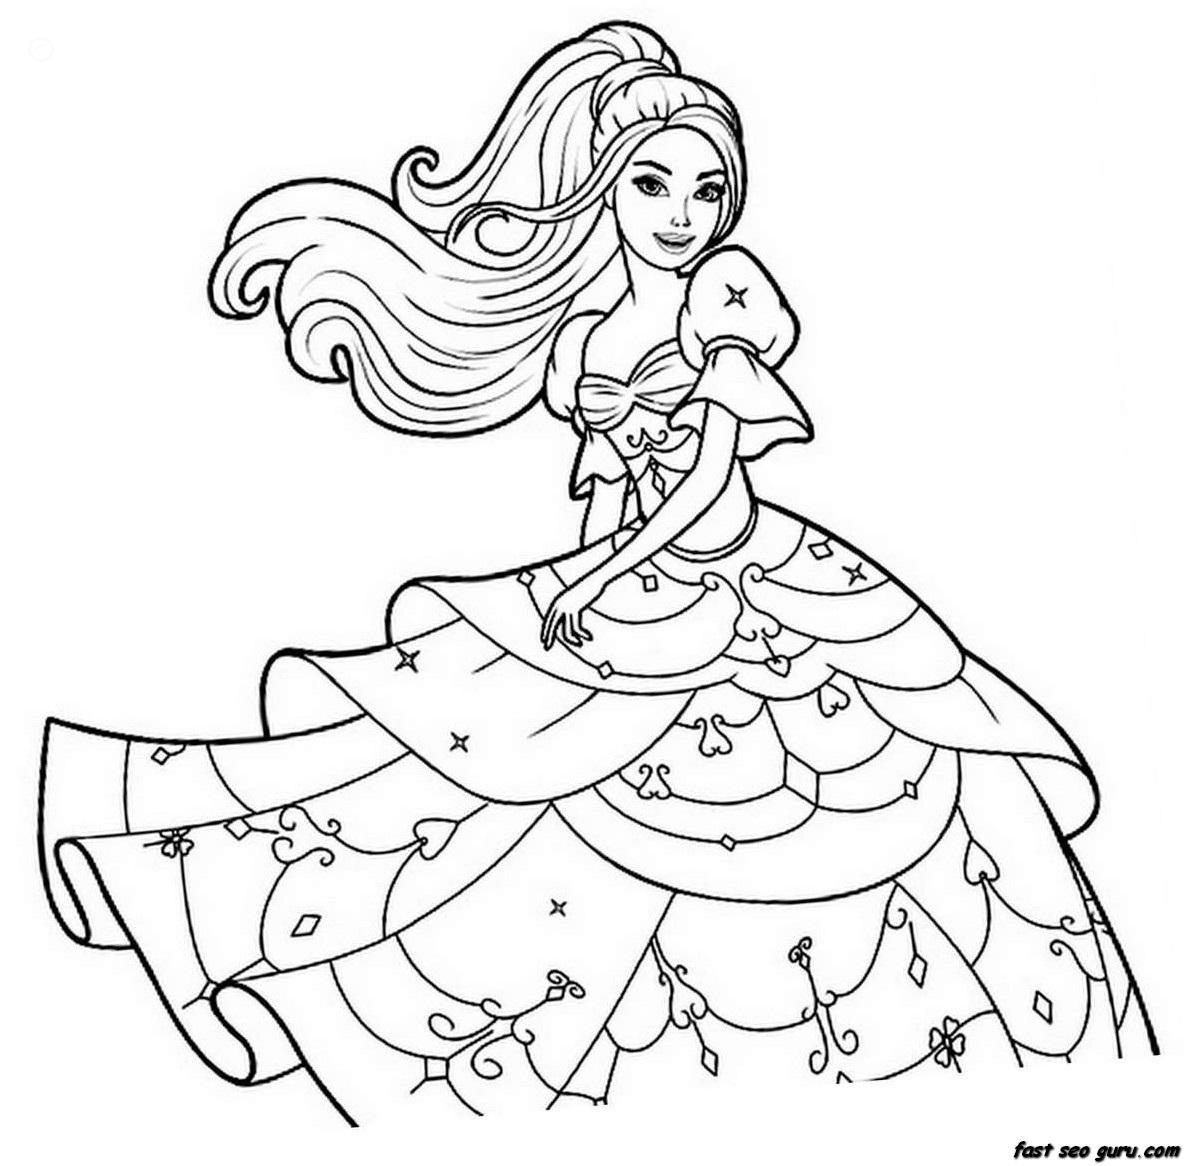 barbie coloring pageprintablecoloring pages - Barbie Coloring Page